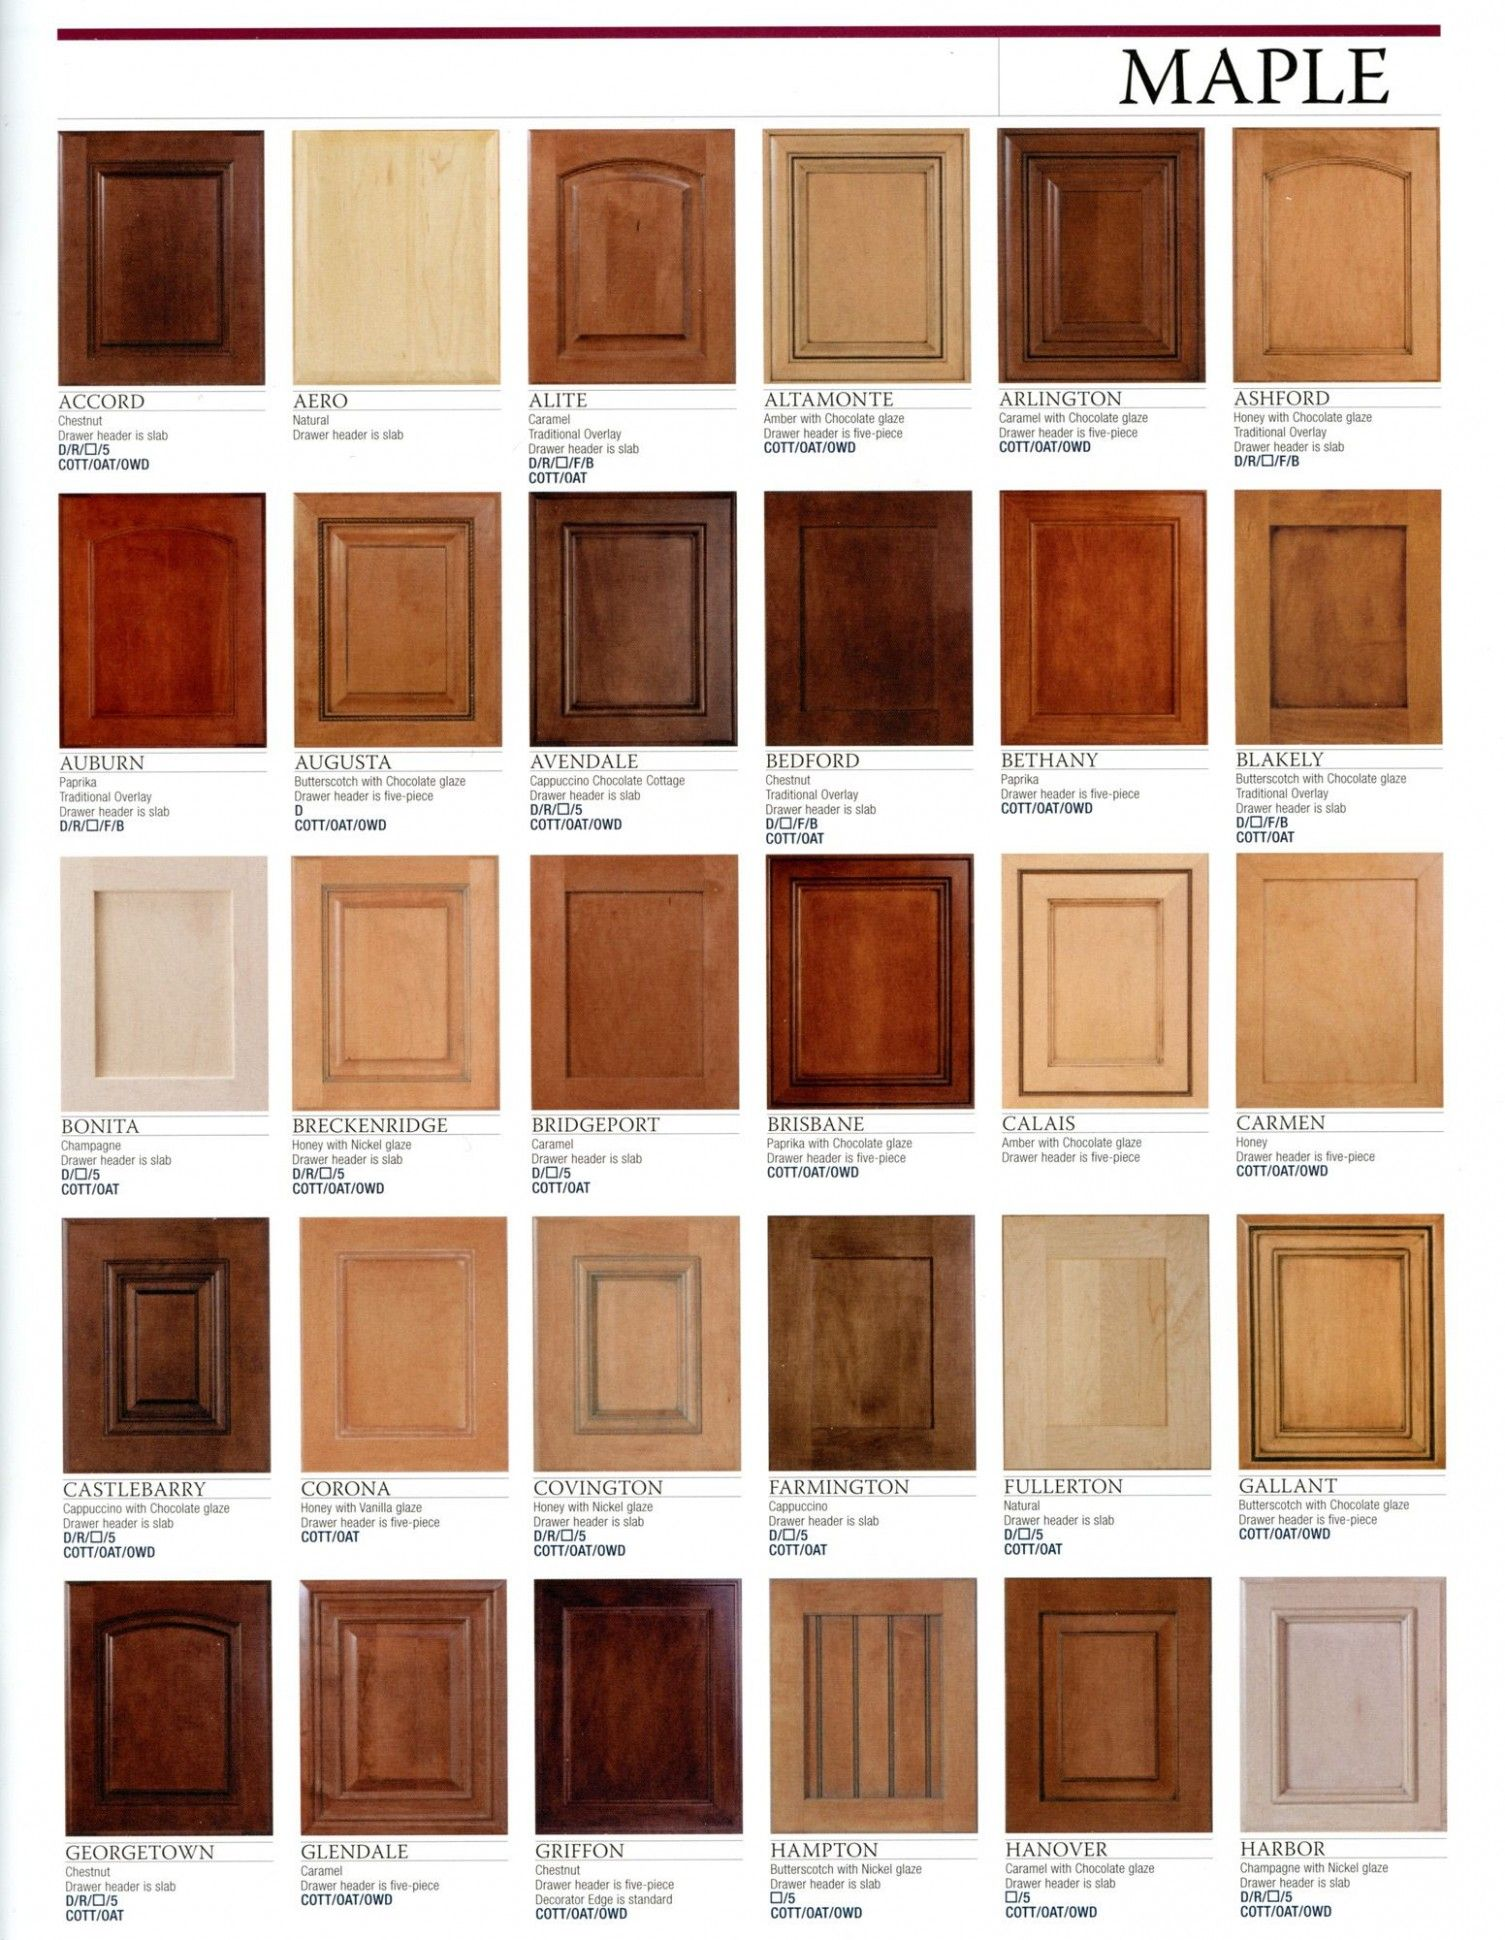 New Kitchen Cabinet Stain Color In 2020 Cabinet Stain Colors Staining Cabinets Wood Stain Colors